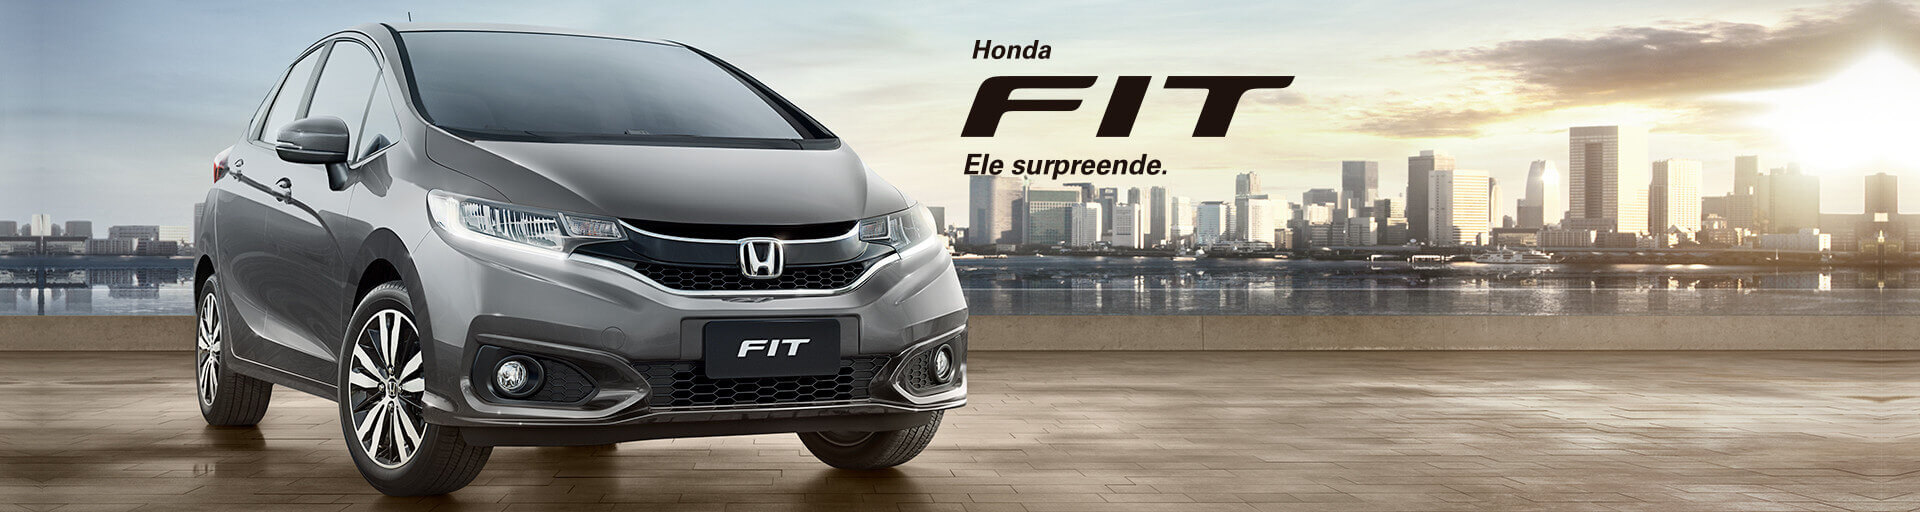 fit-img